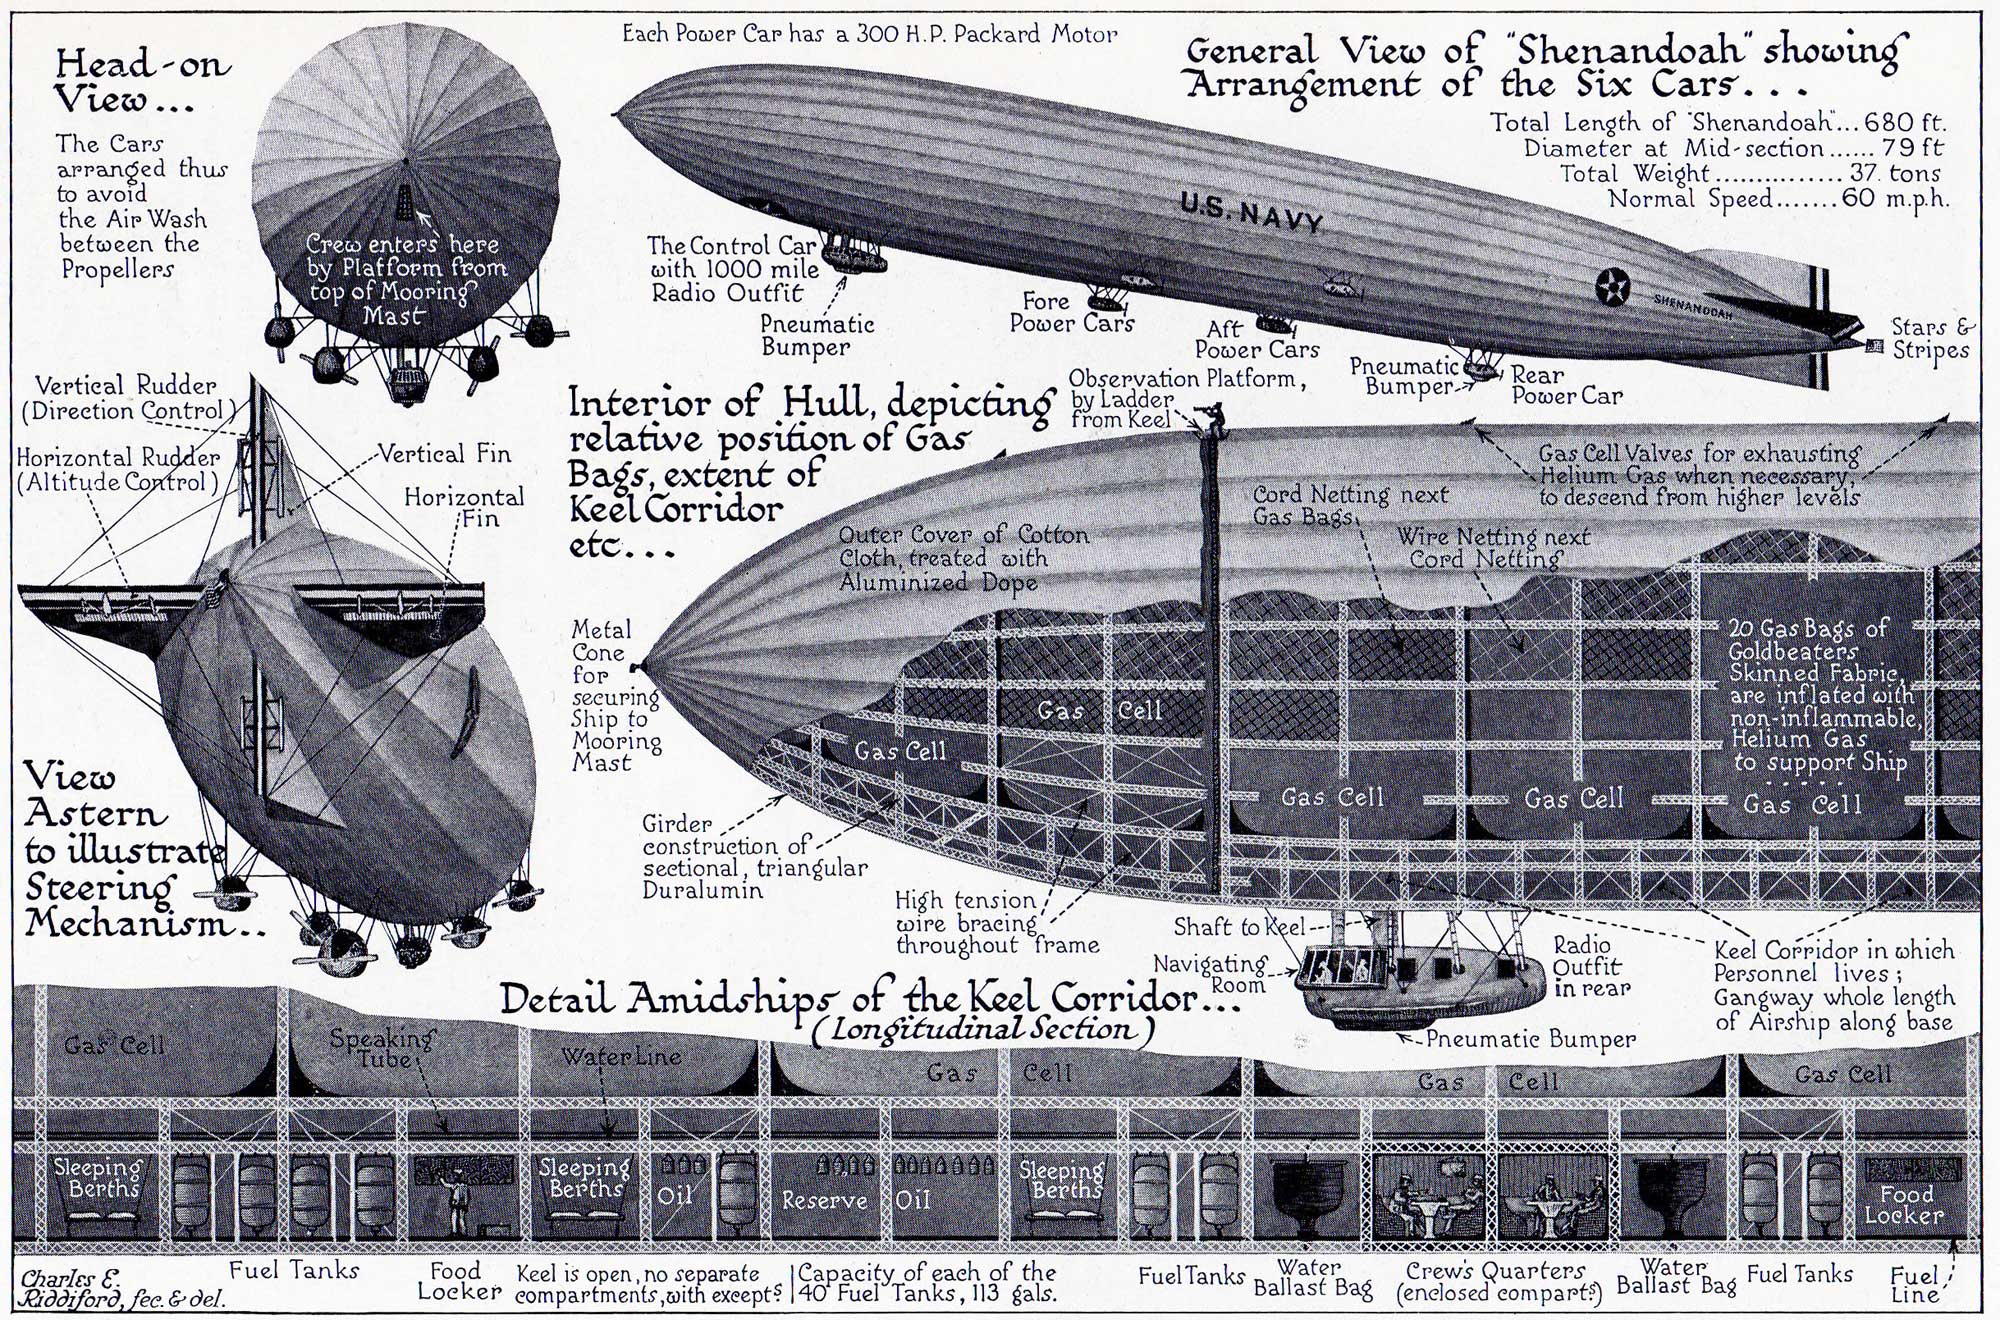 USS Shenandoah, cut-away drawing